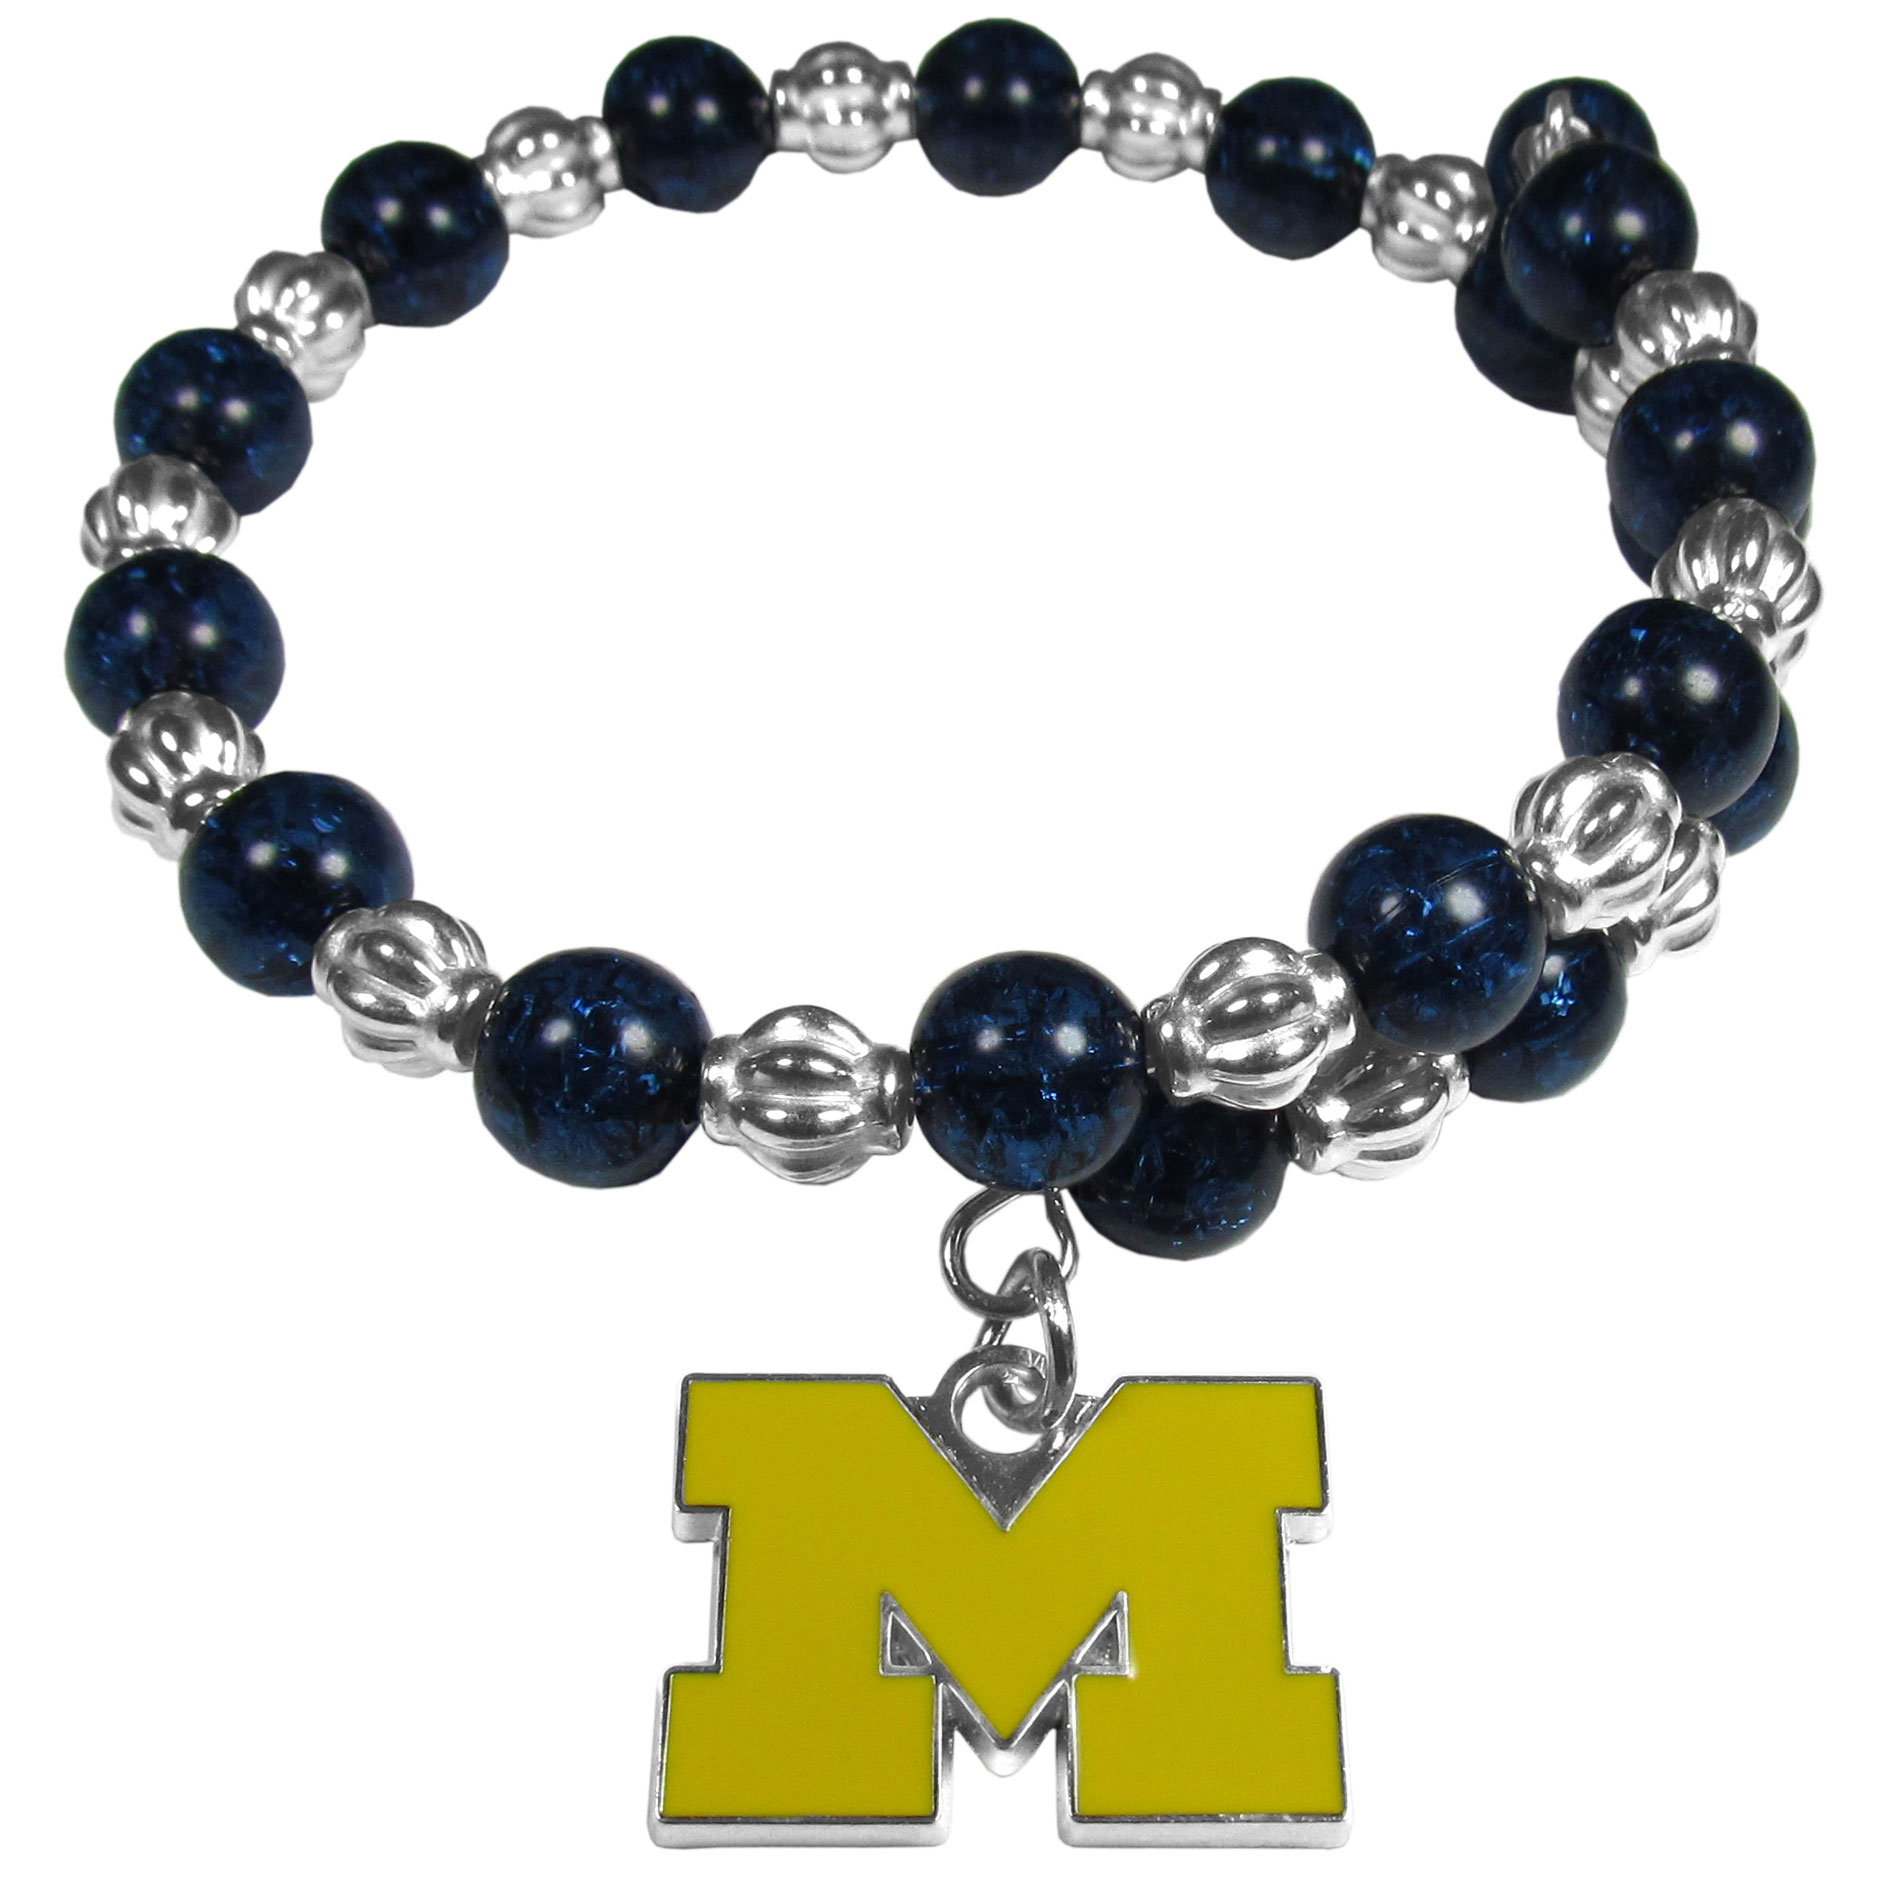 Michigan Wolverines Bead Memory Wire Bracelet - Our Michigan Wolverines memory wire bead bracelet is trendy way to show off your love of the game. The double wrap bracelet is completely covered in 7.5 mm crystals that are broken up with silvertoned beads creating a designer look with a sporty twist. The bracelet features a fully cast, metal team charm that has expertly enameled team colors. This fashion jewelry piece is a must-have for the die-hard fan that chic look that can dress up any outfit.